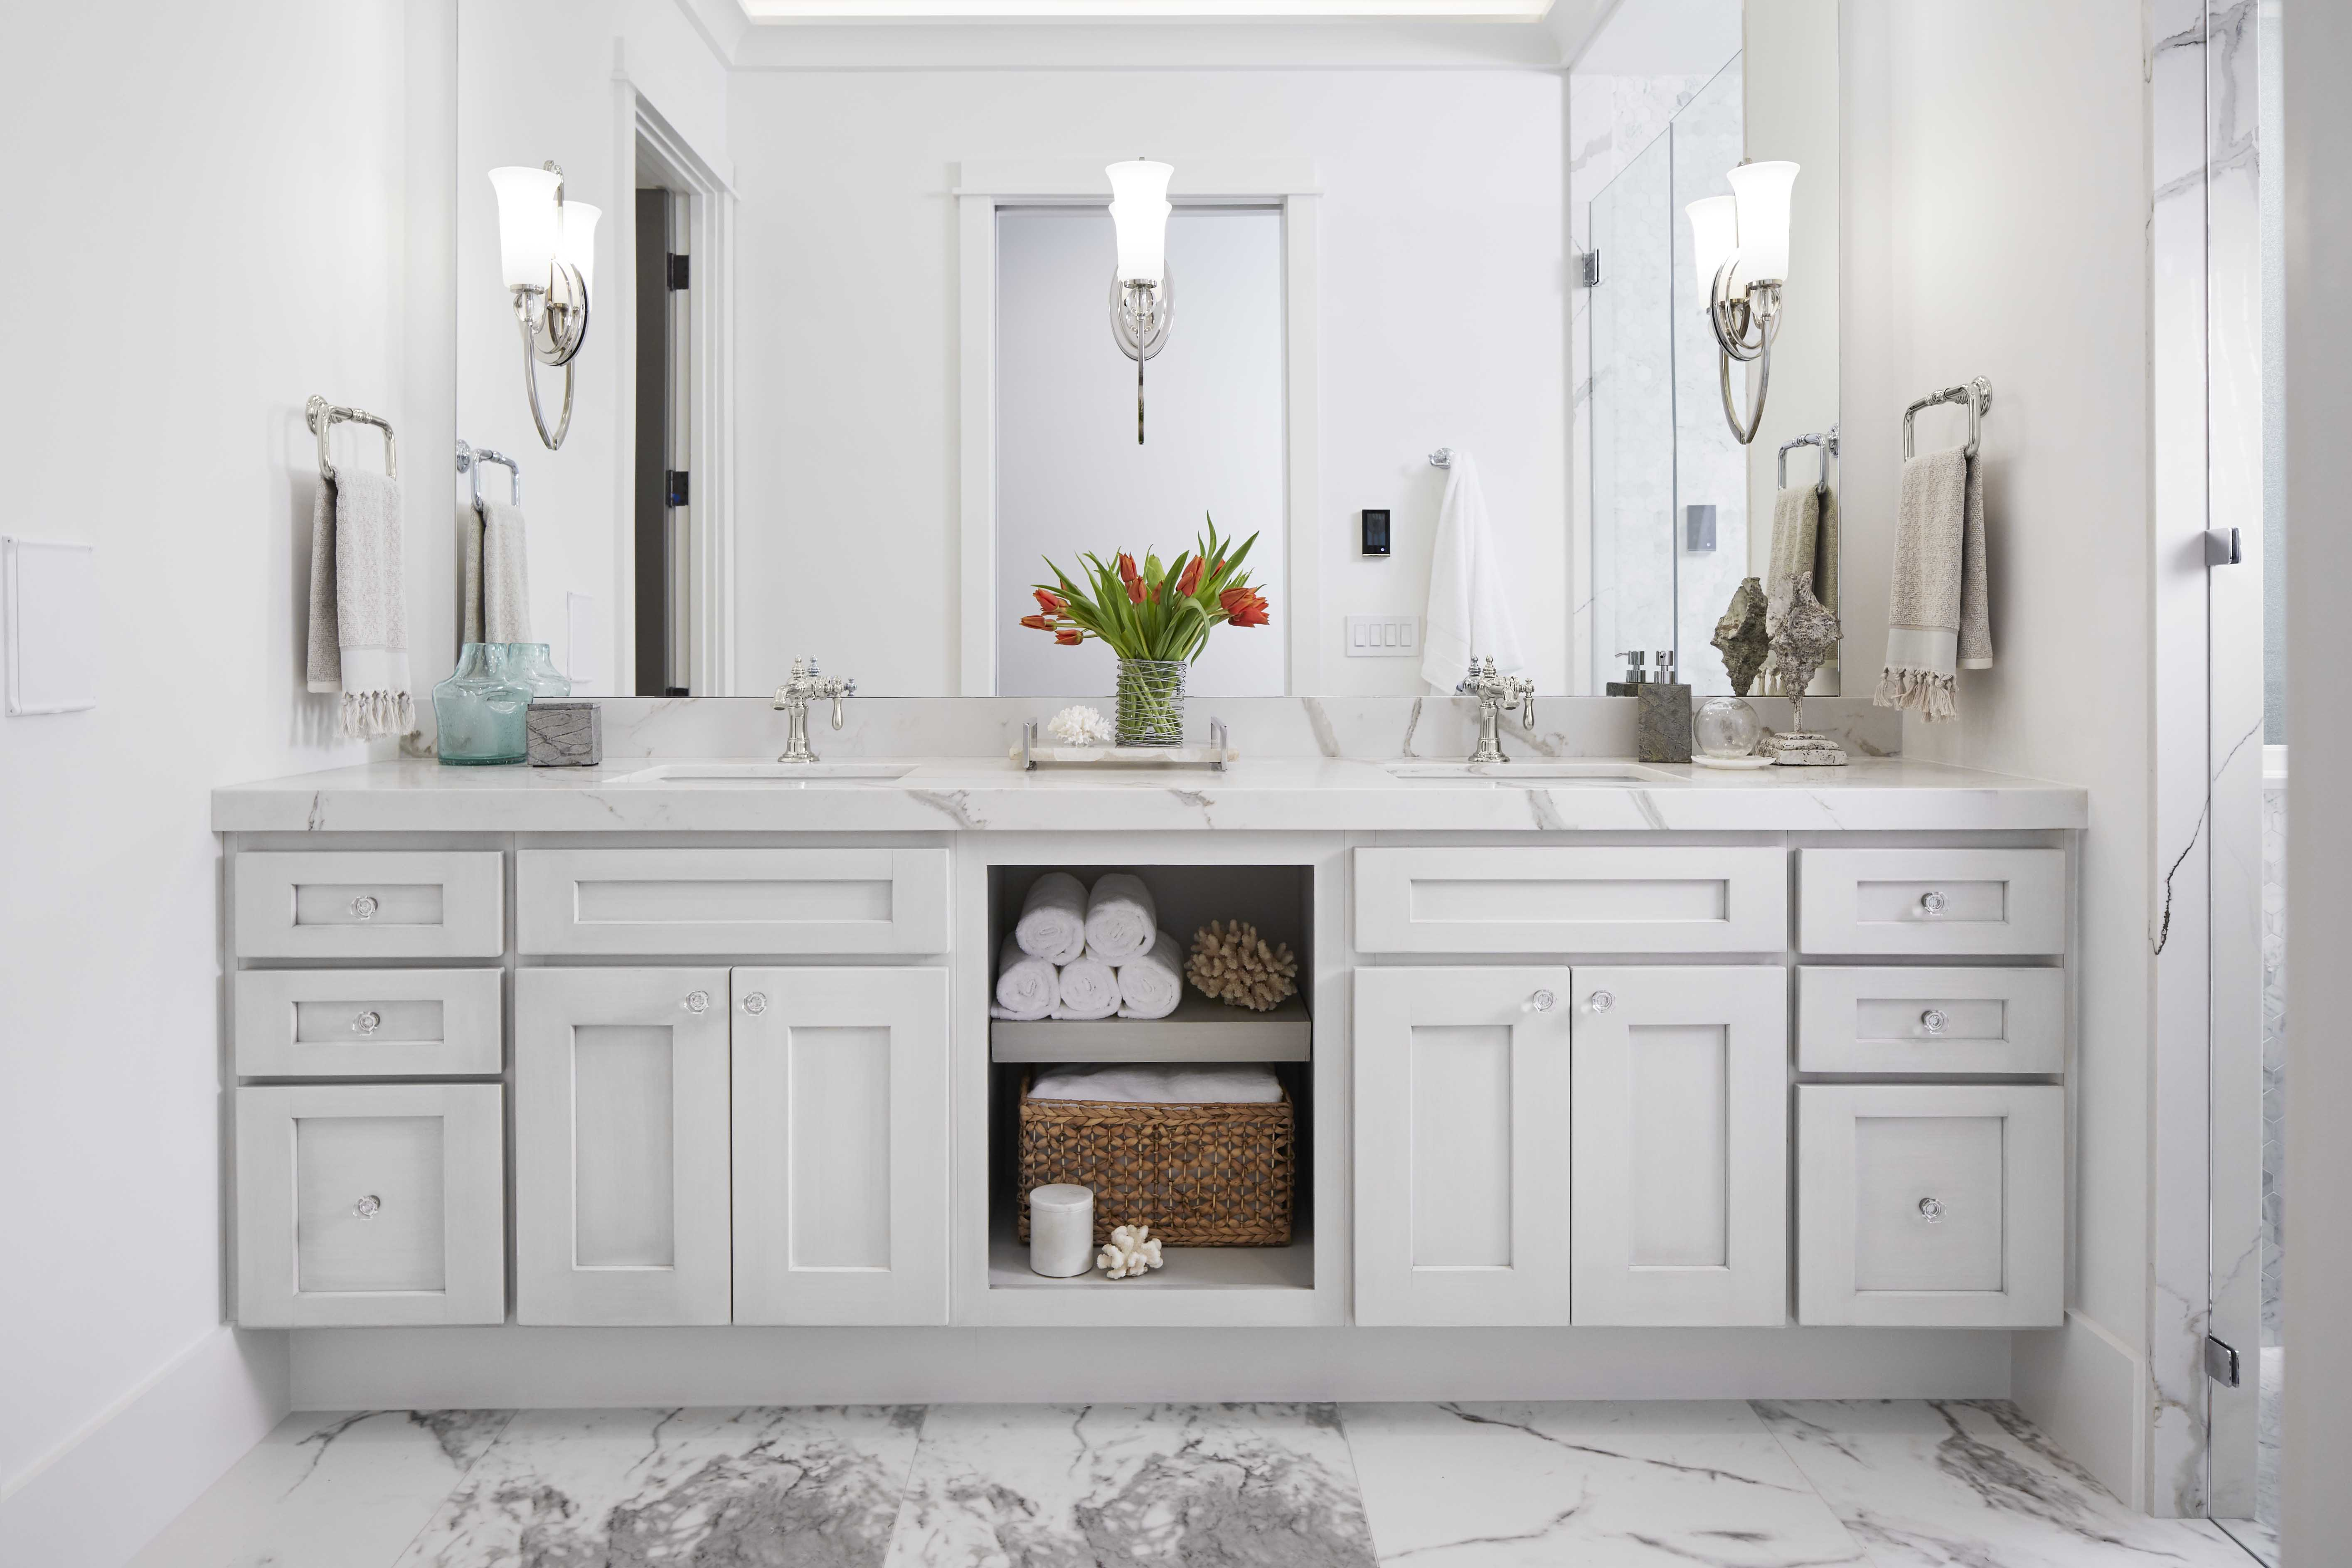 Verticyl Undermount Sink     Artifacts Bathroom Sink Faucet     Dual styling spaces in the master bathroom bring streamlined efficiency to morning routines. Traditional materials in a classic gray and white palette help create a timeless look.